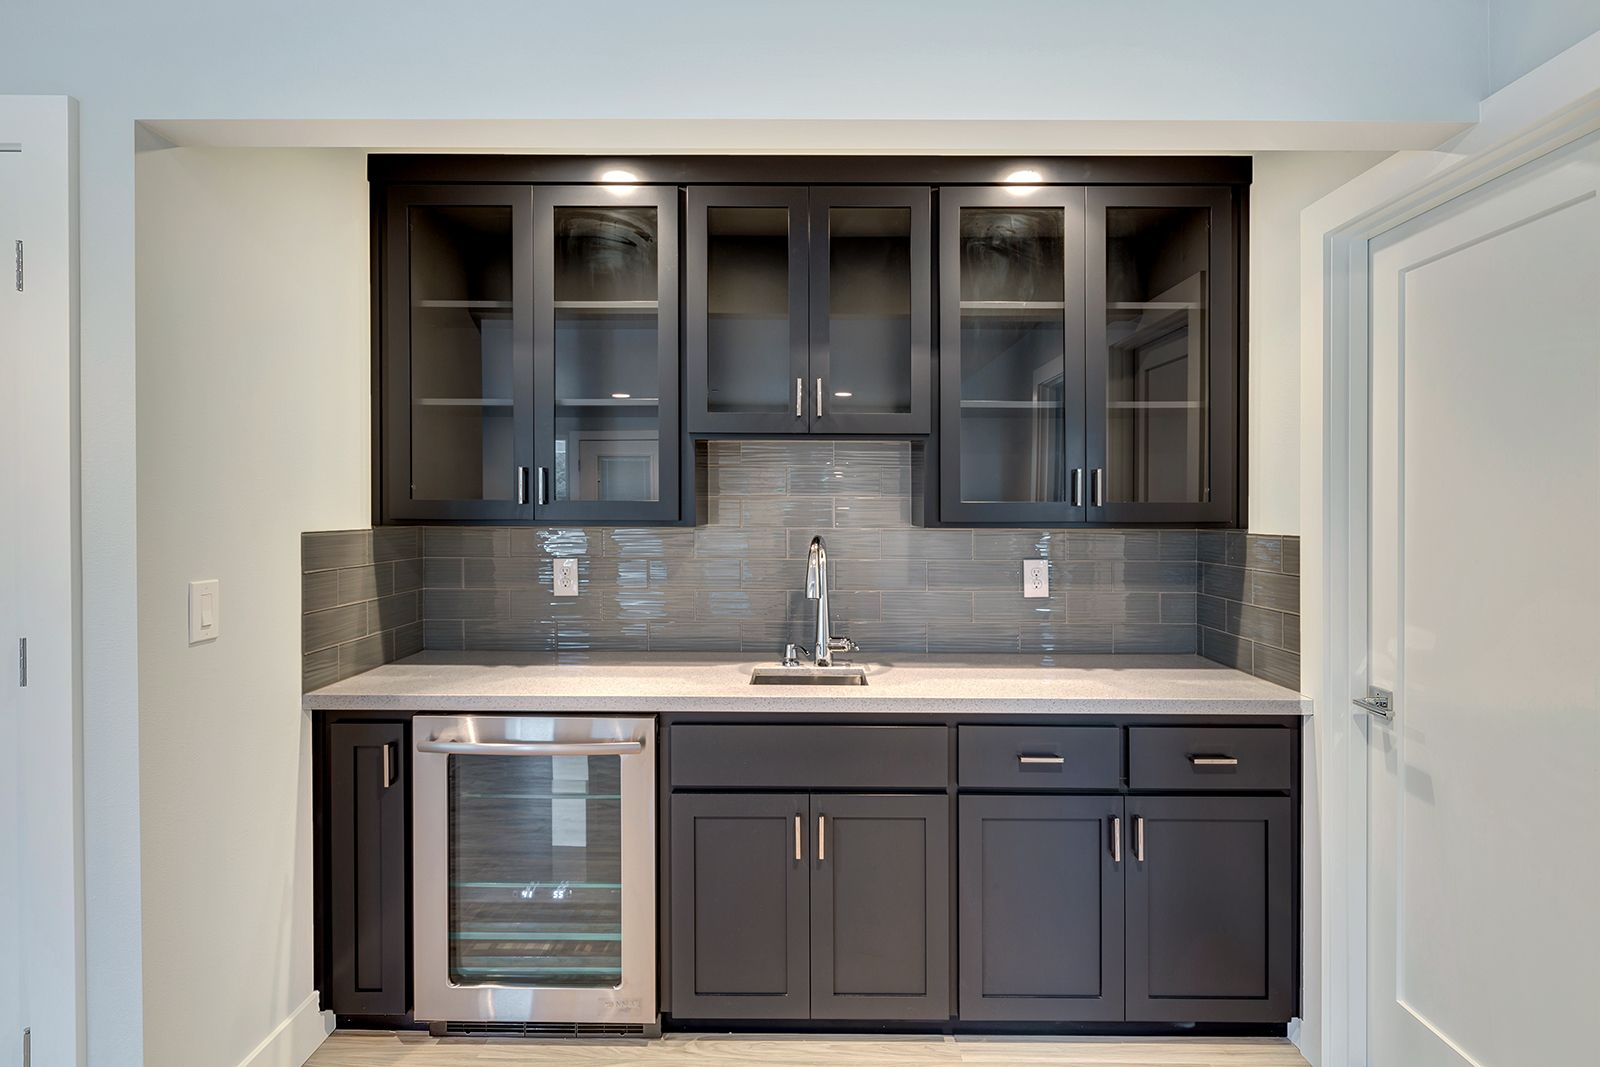 Lowe S Cabinet Ideas Bar Basement: Basement Bar Kitchen With A Wine Bar, White Quartz